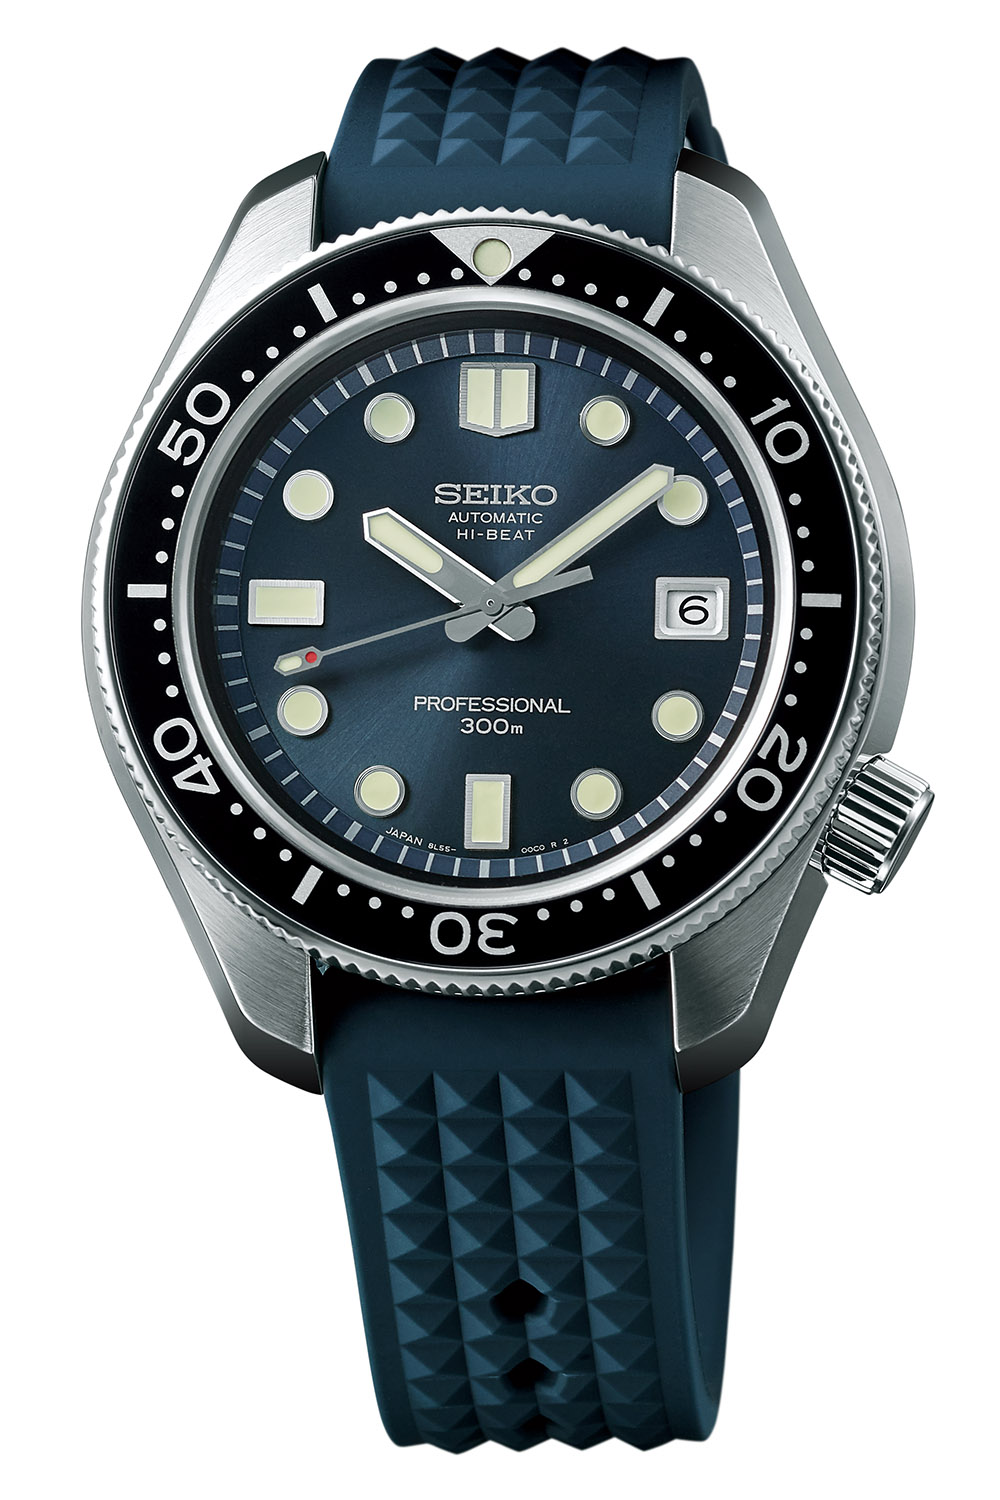 Seiko's new Diver's Watch 55th Anniversary L.E.'s Seiko-Prospex-Diver-55th-Anniversary-Re-Edition-1968-Hi-Beat-Diver-SLA039-2